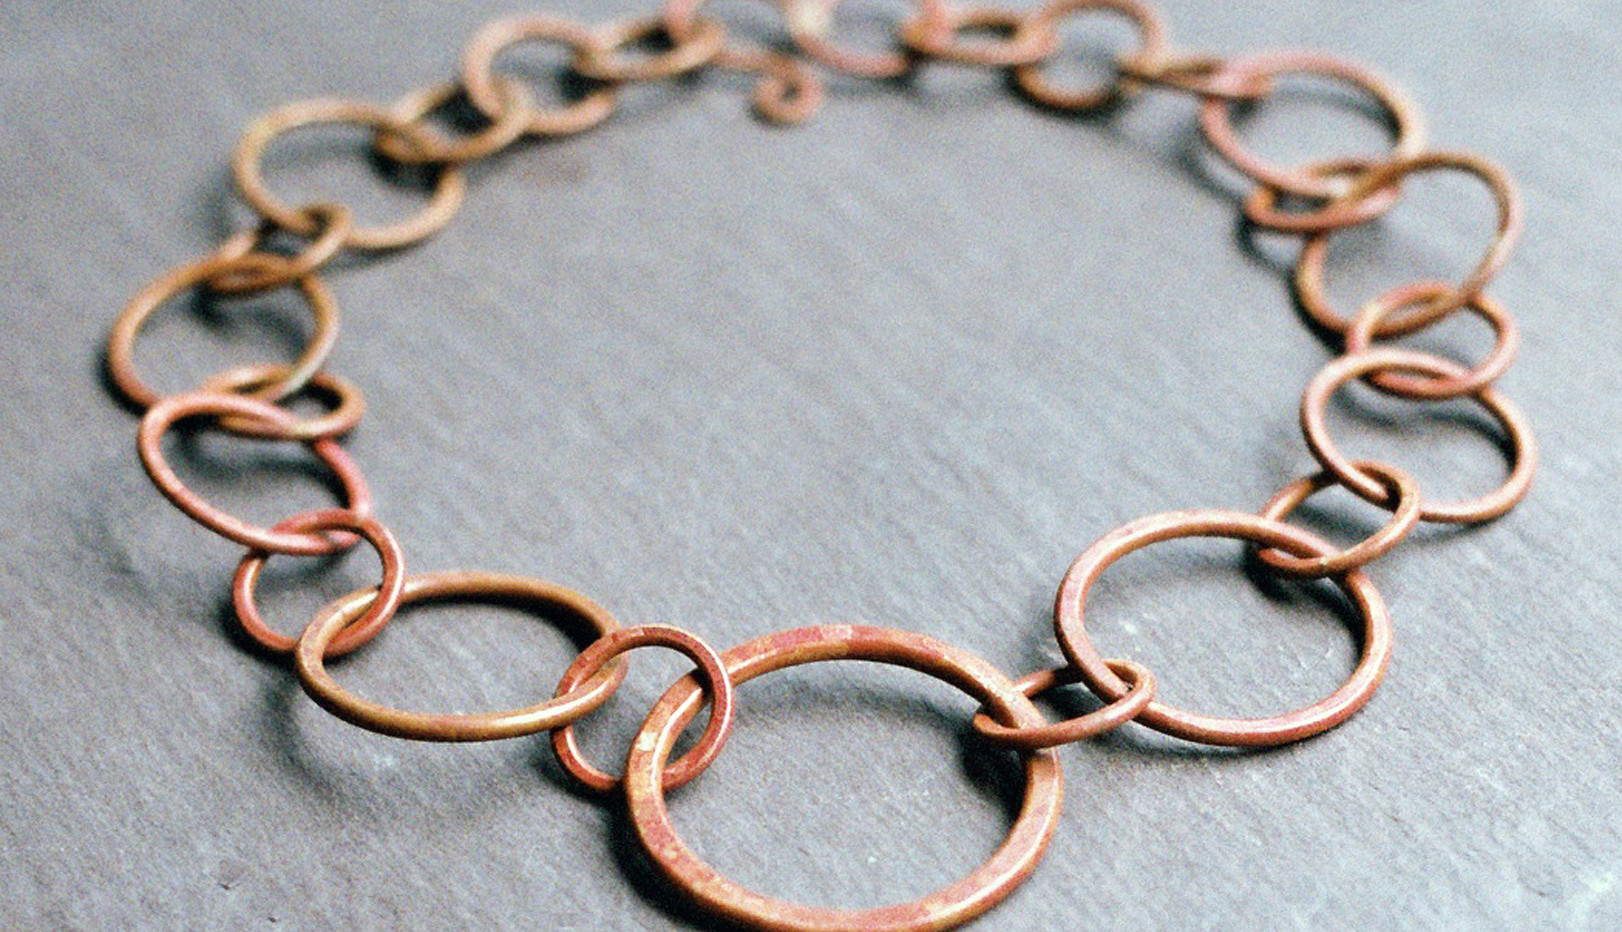 Copper Chain with Torch-Fired Golden Red Patina    $150